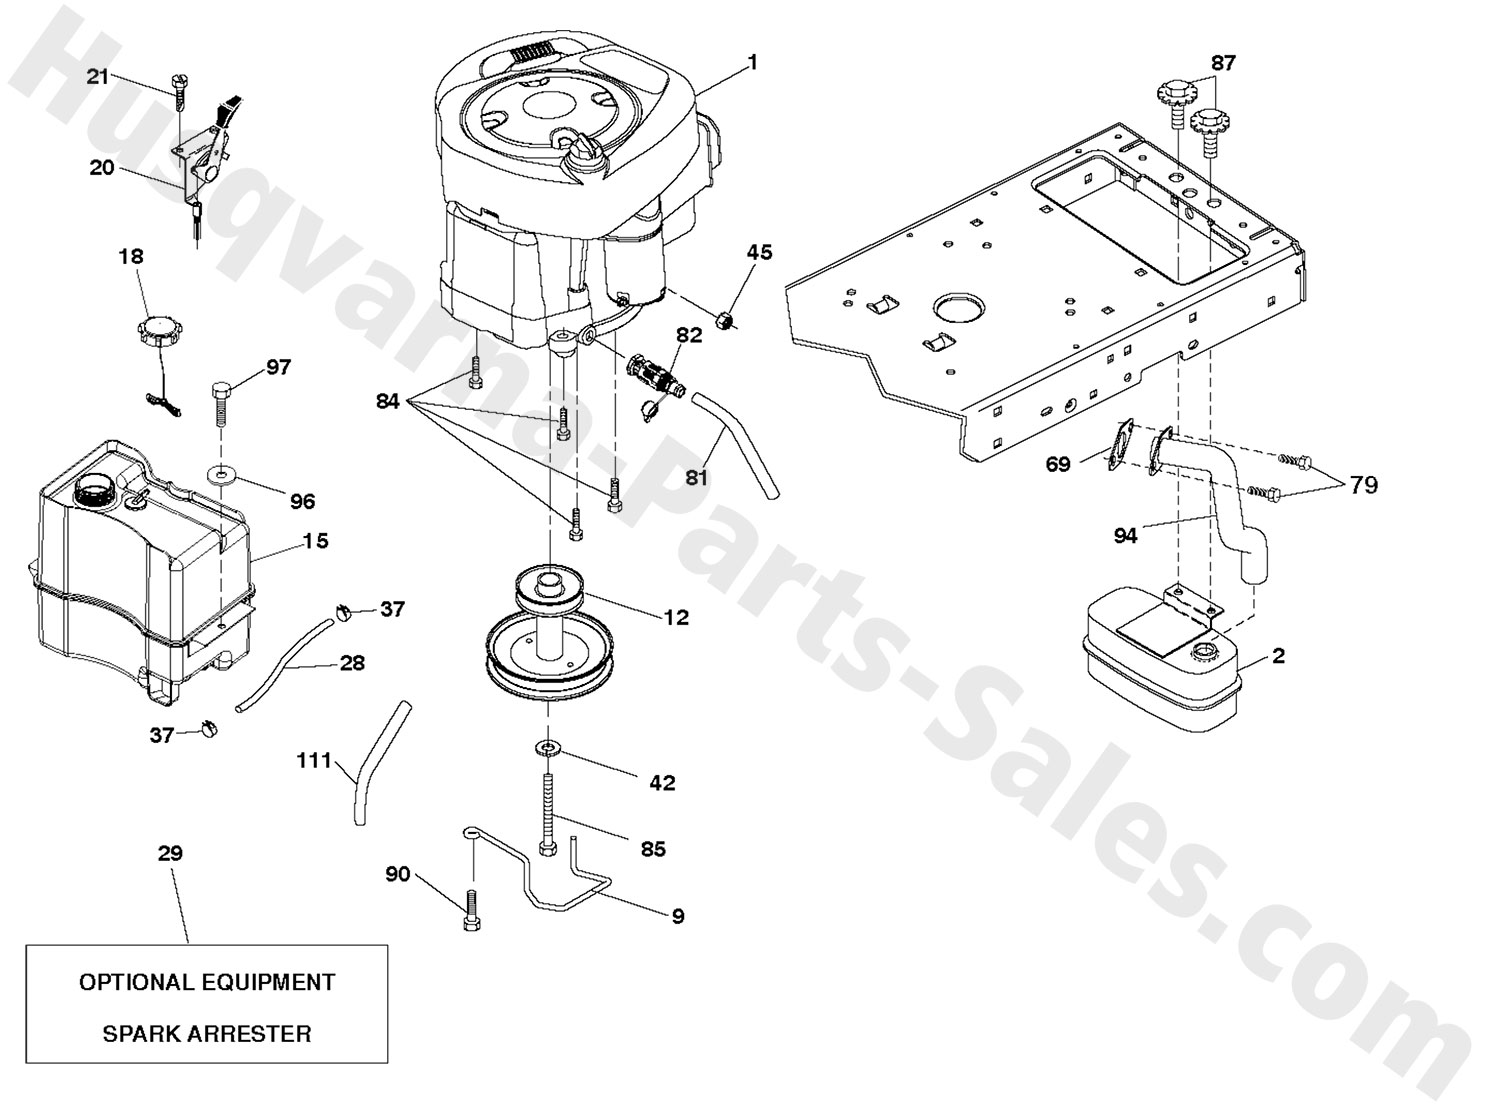 Oem Husqvarna Lawn Tractor Parts in addition P 14585 John Deere Z900a Series 72 Mower Deck Parts Diagram furthermore Mower Deck Cutting Deck in addition Scotts S2554 Parts List as well Troy Bilt Self Propelled Mower Diagram. on john deere riding mowers